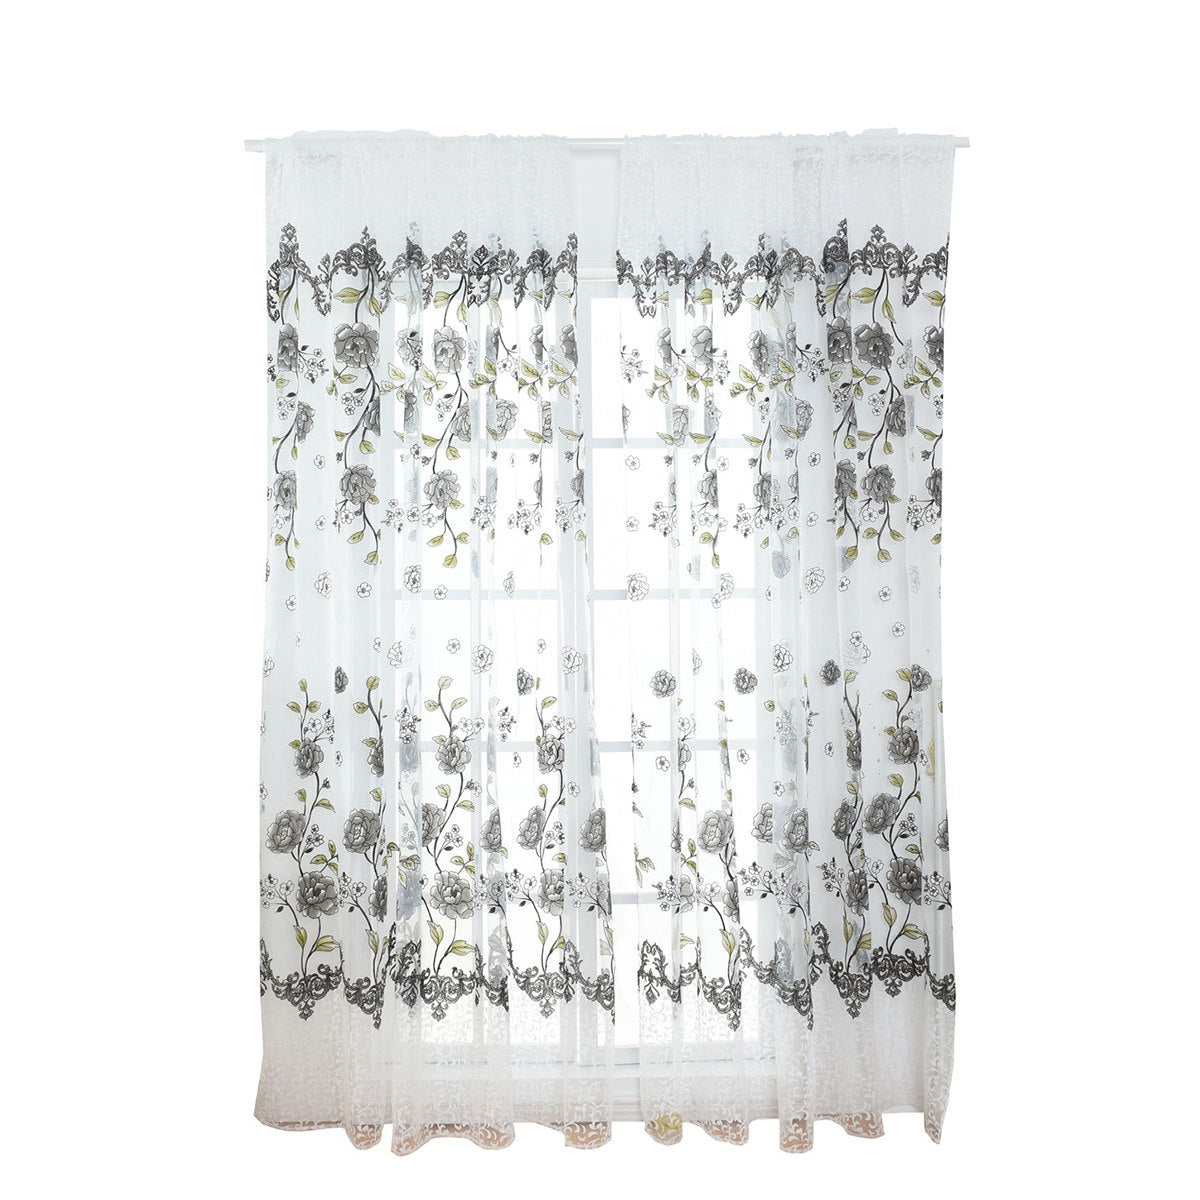 Costbuys  Sheer Floral Curtains Home Decor Window Treatments Modern Curtain Pour Le Salon Window - Light Grey